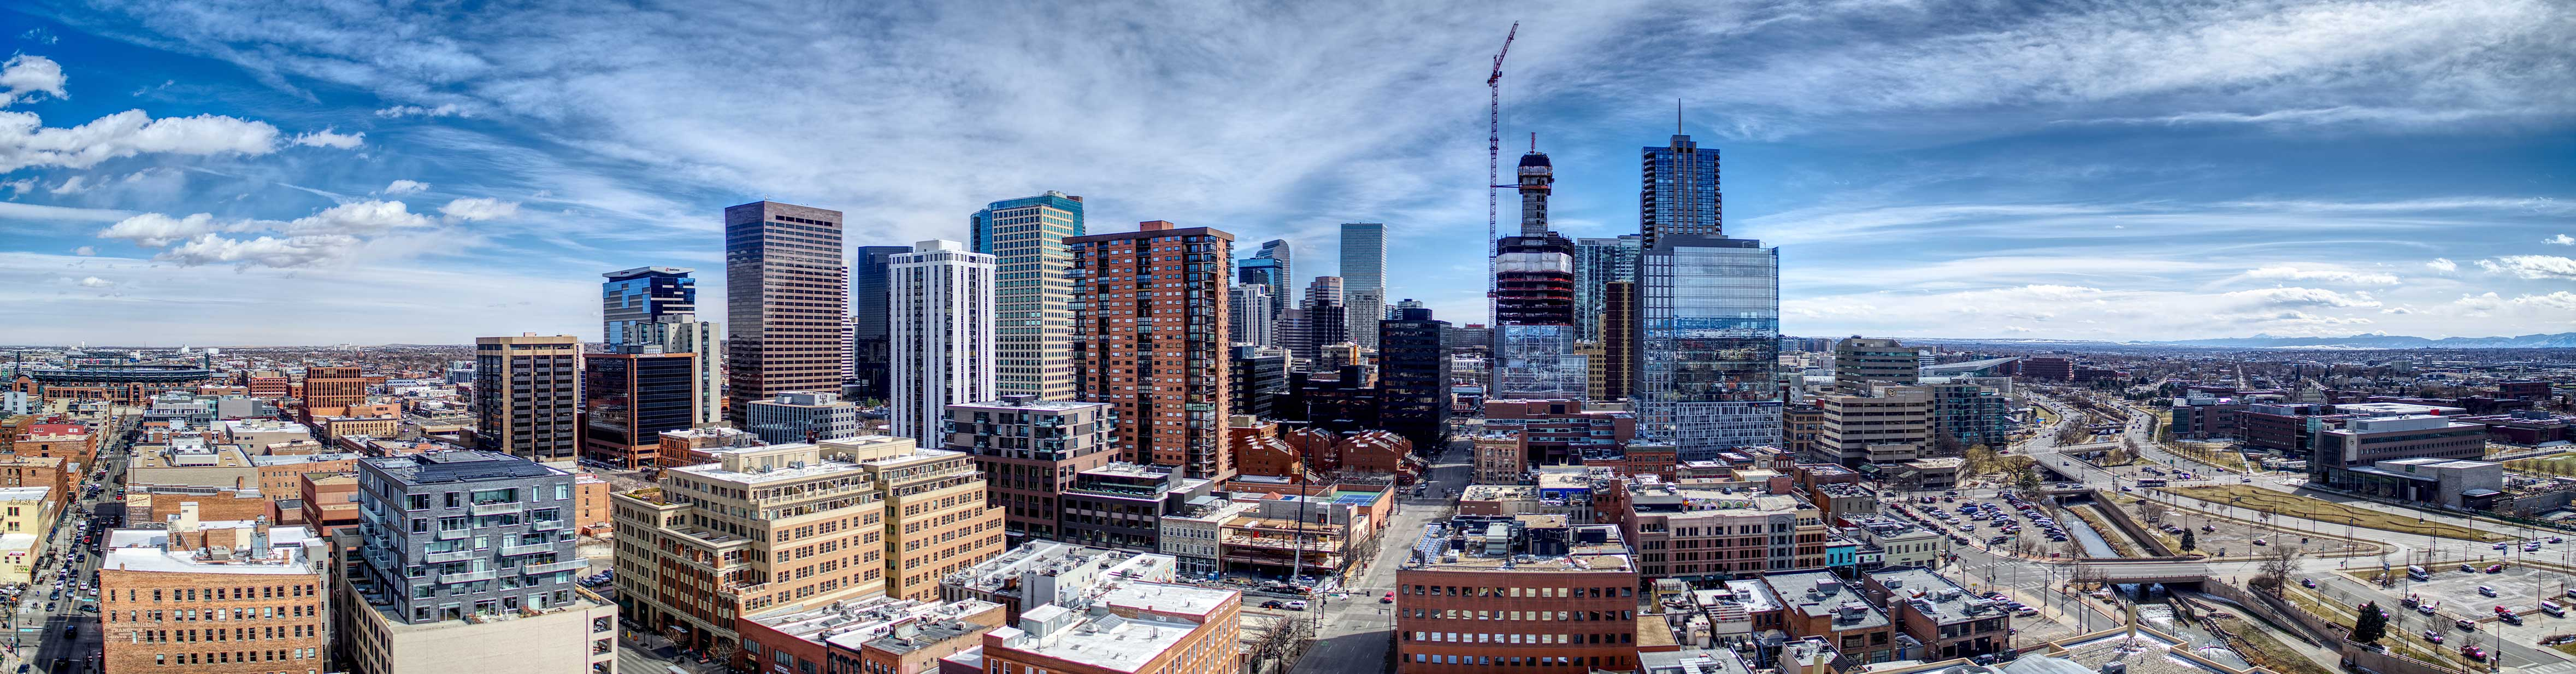 A 10 Year Look At The Denver Real Estate Market